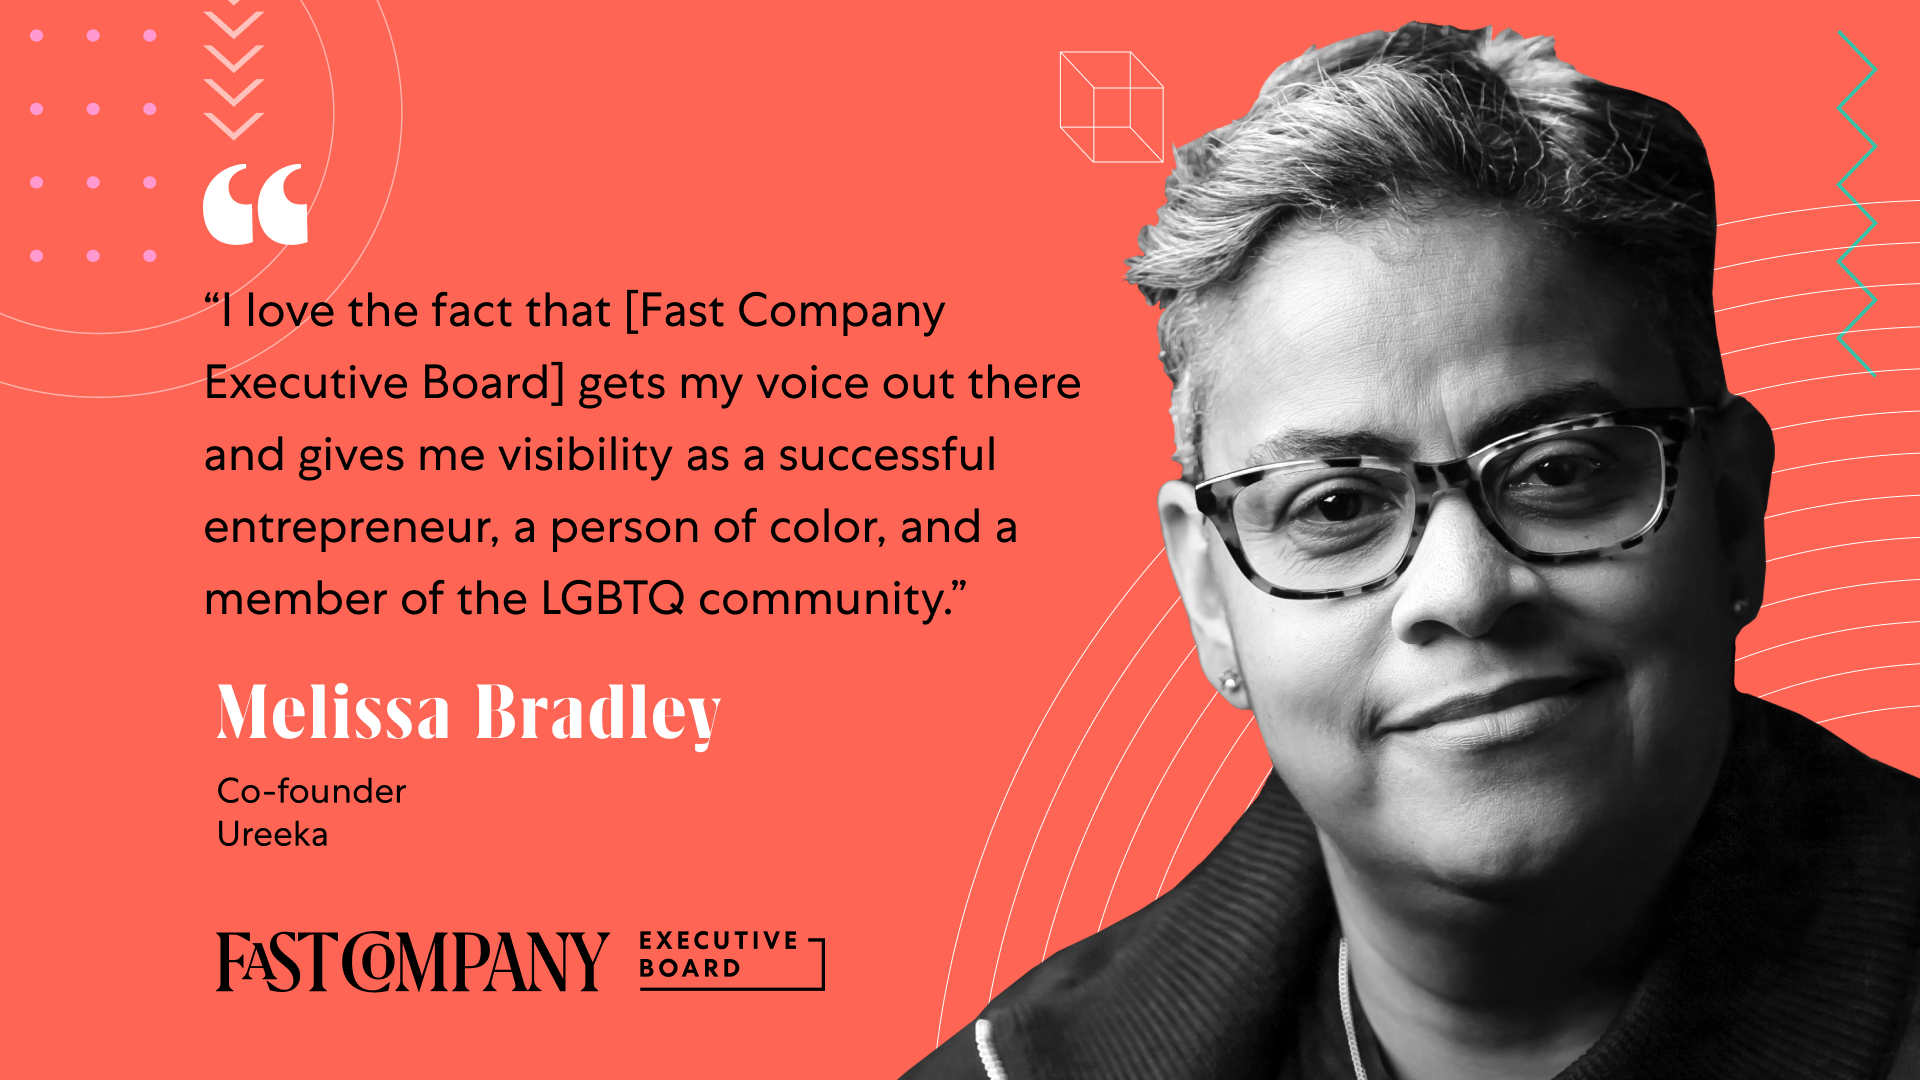 Fast Company Executive Board Helps Melissa Bradley Amplify Her Voice